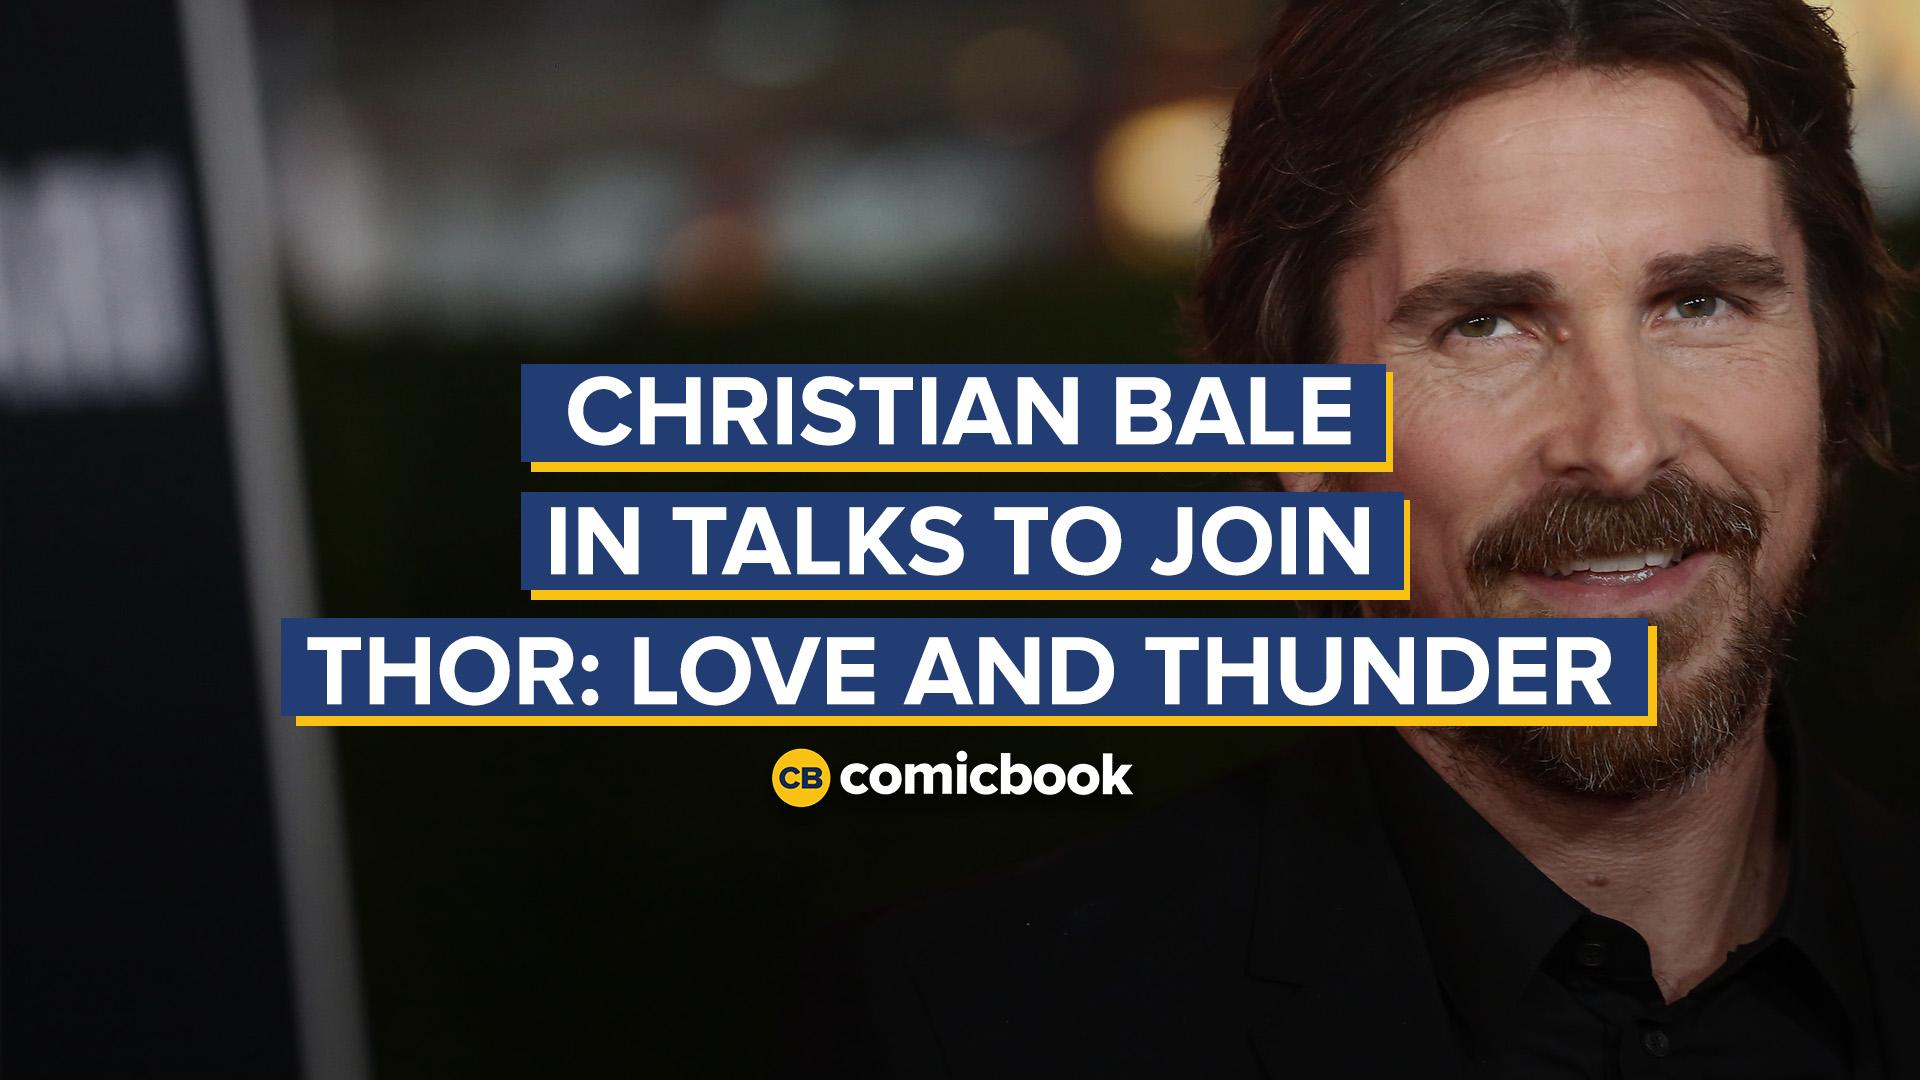 Christian Bale in Talks to Join Thor: Love and Thunder screen capture